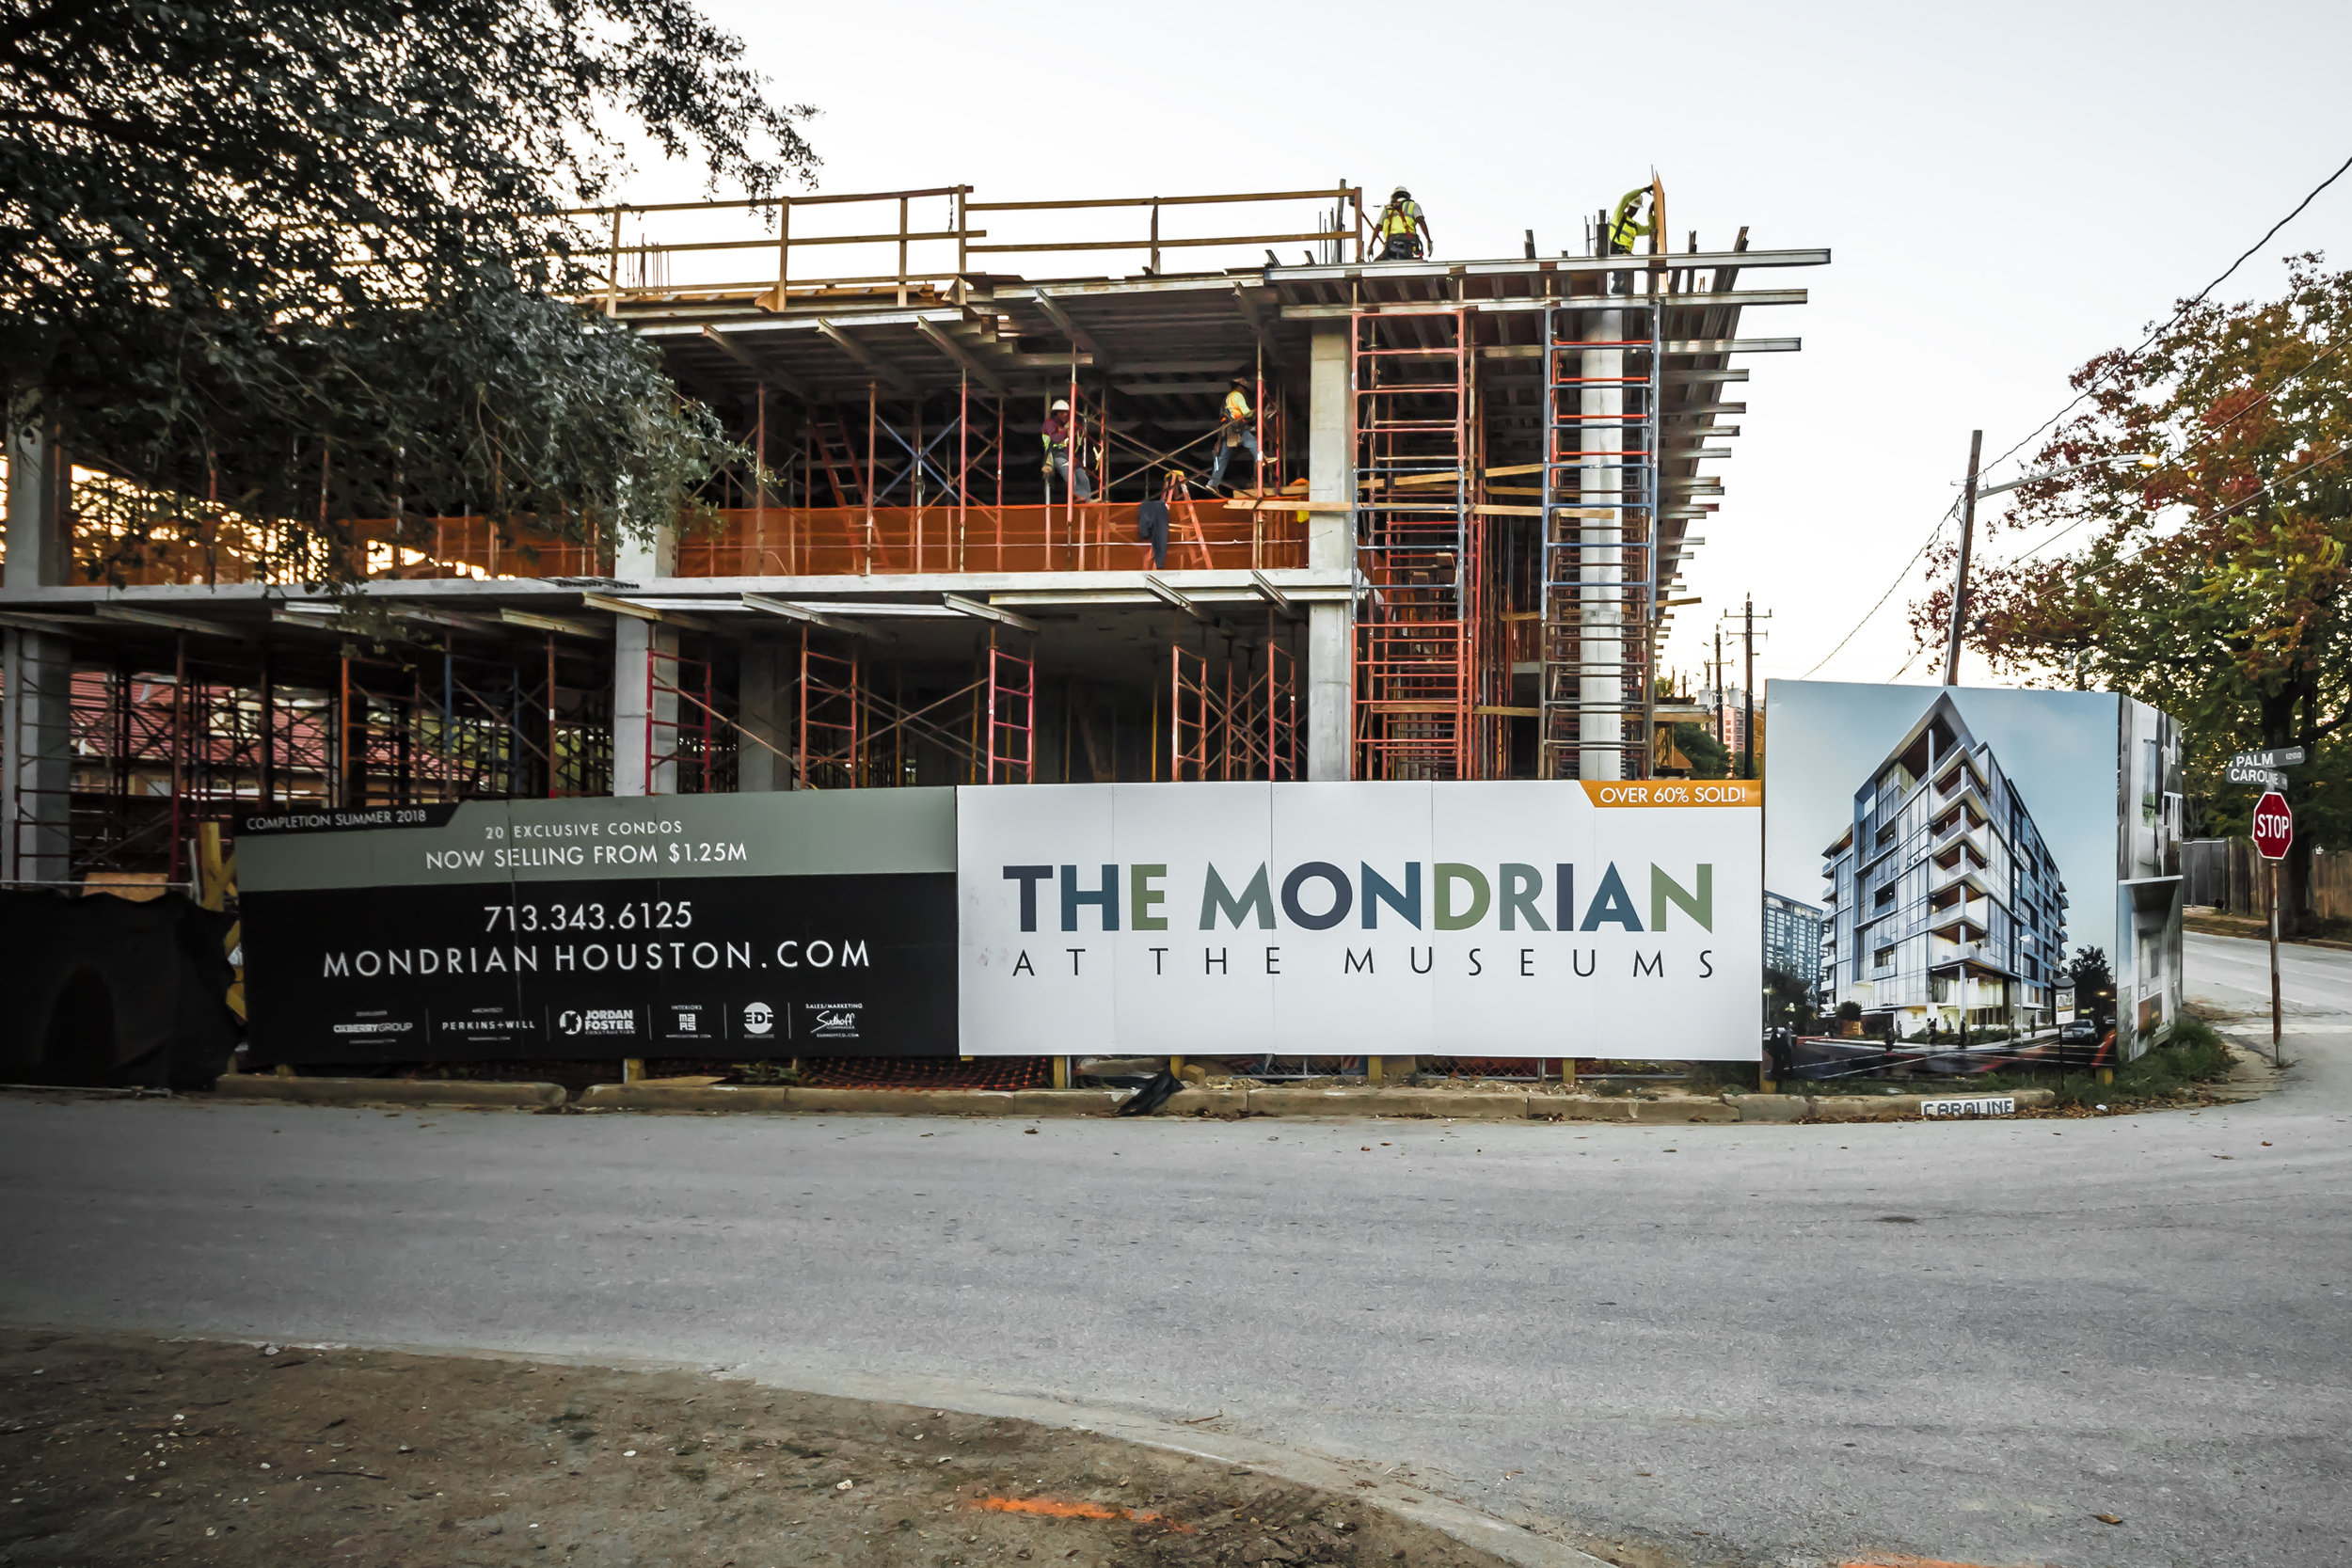 Mondrian_Construction-Nov2017-5.jpg